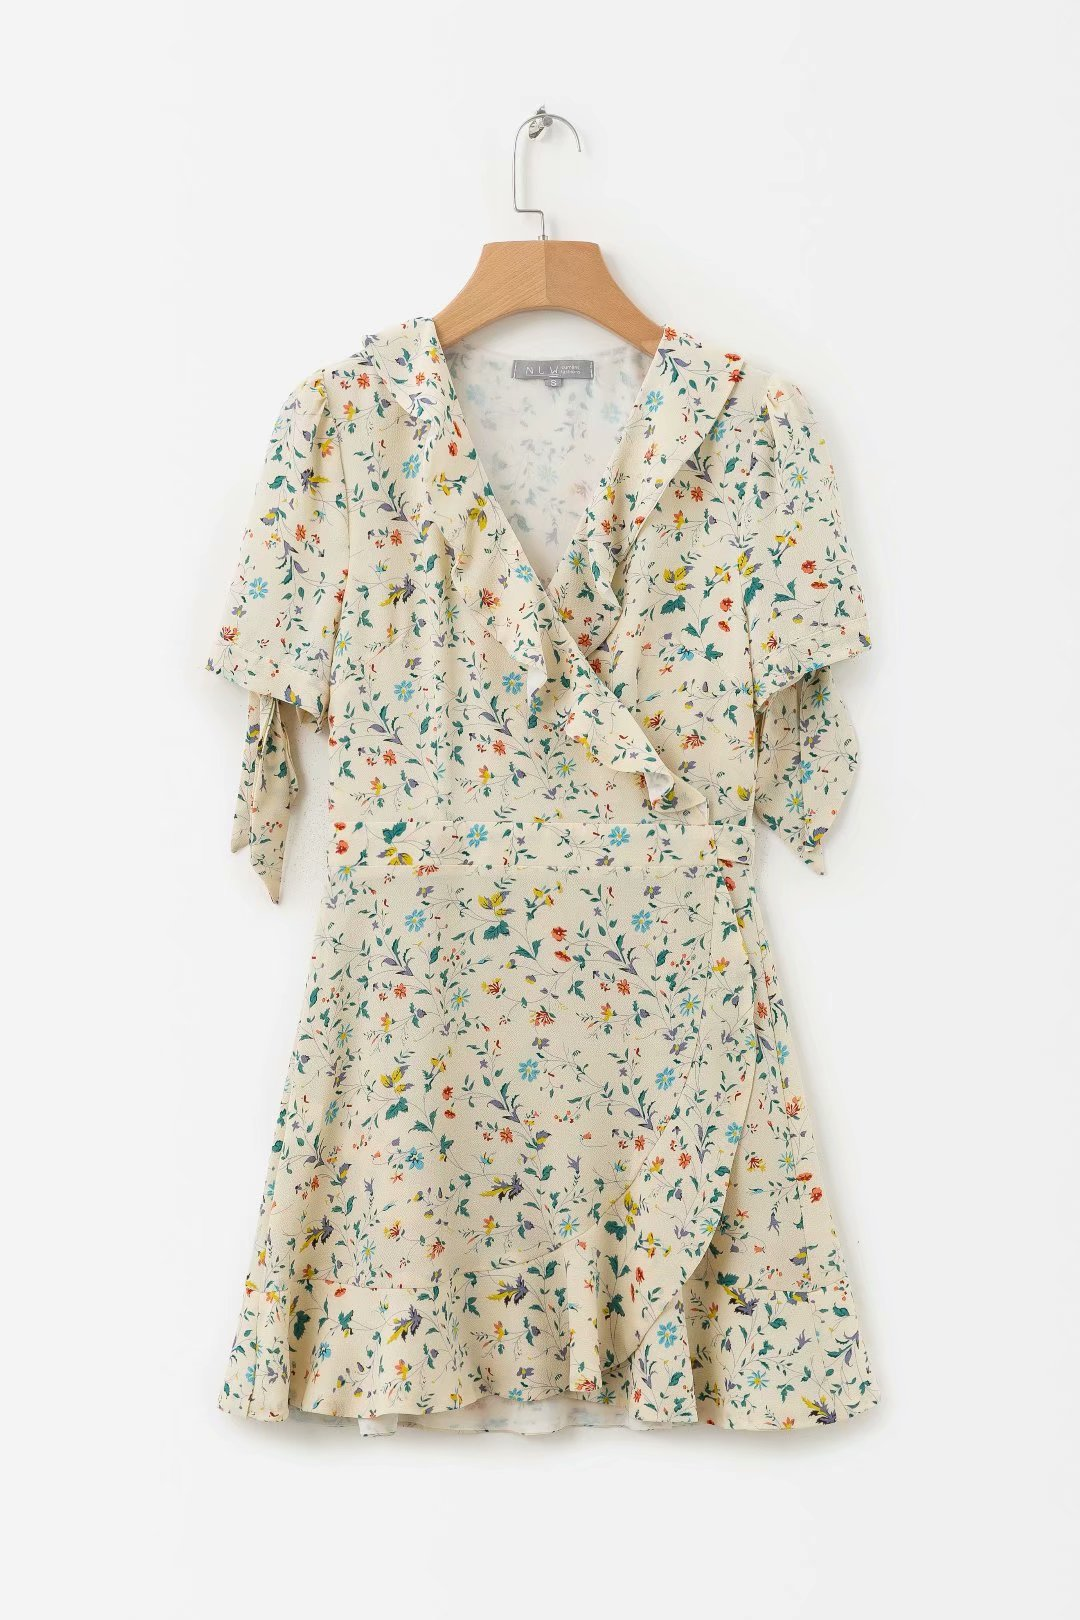 Autumn New Style Europe And America WOMEN'S Dress Fashion Flower Printed Loose-Fit V-neck Lace-up Short-sleeve Dress Short Skirt